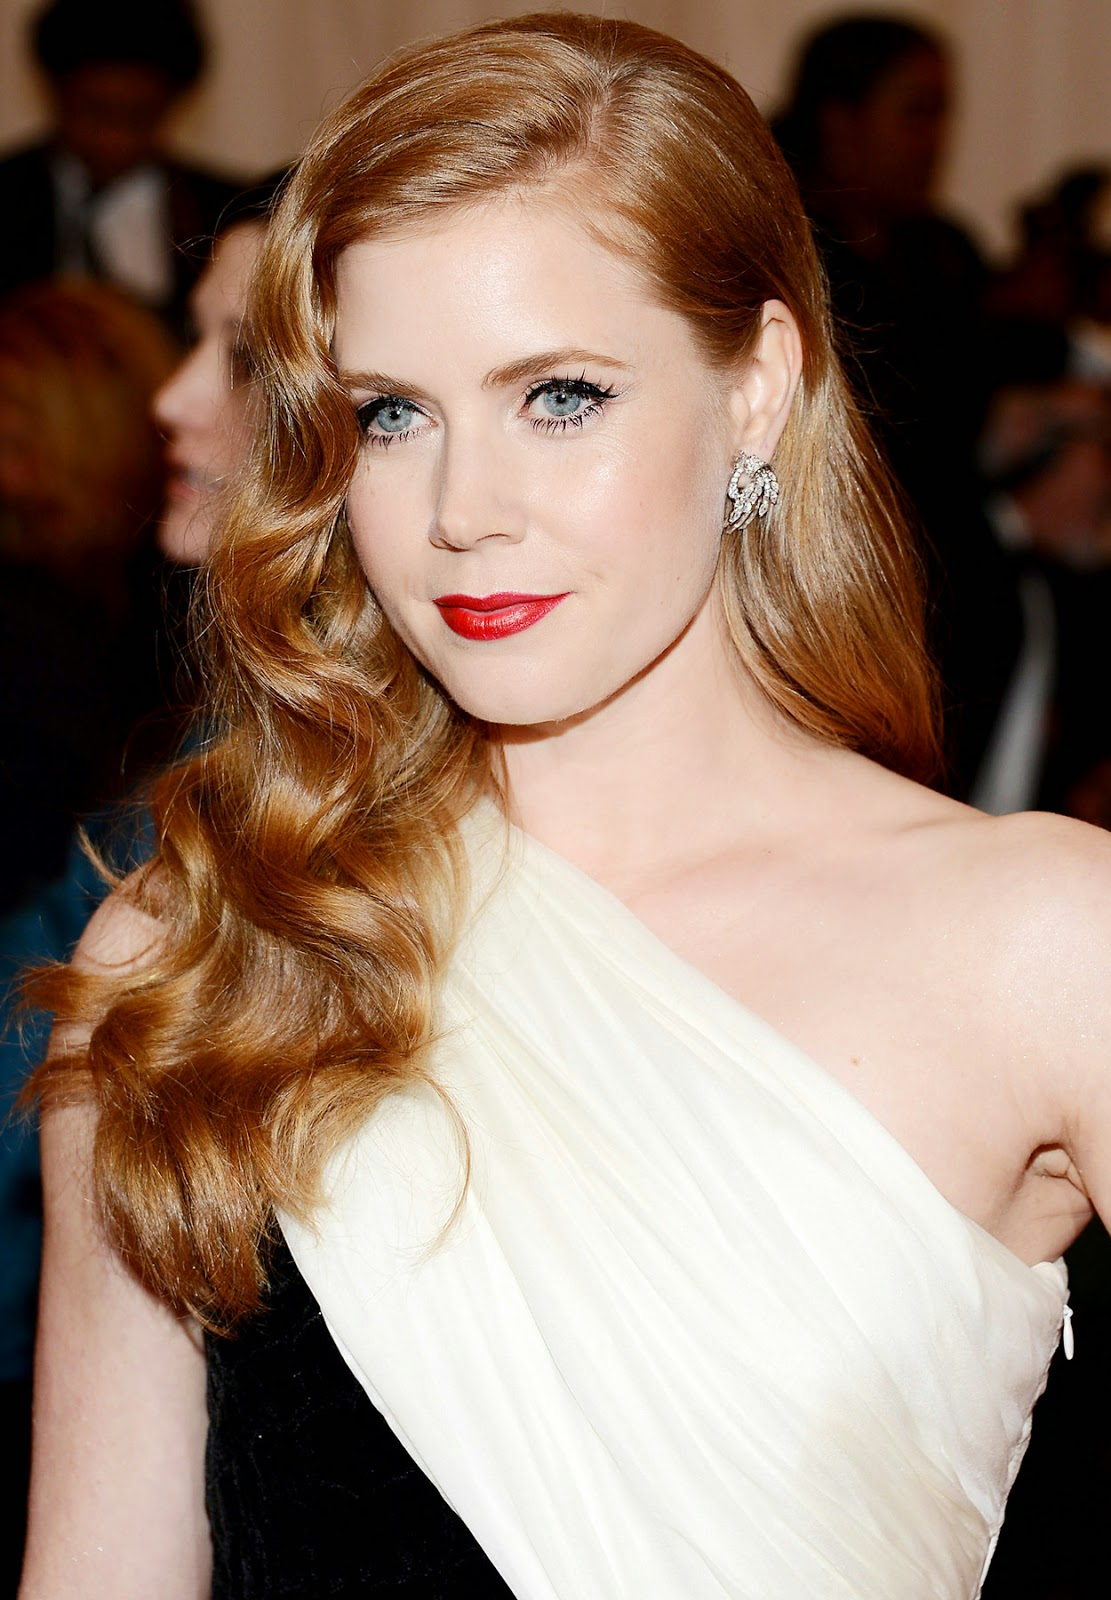 Latest Celebrity Photos Amy Adams Hot And Sexy Wallpapers